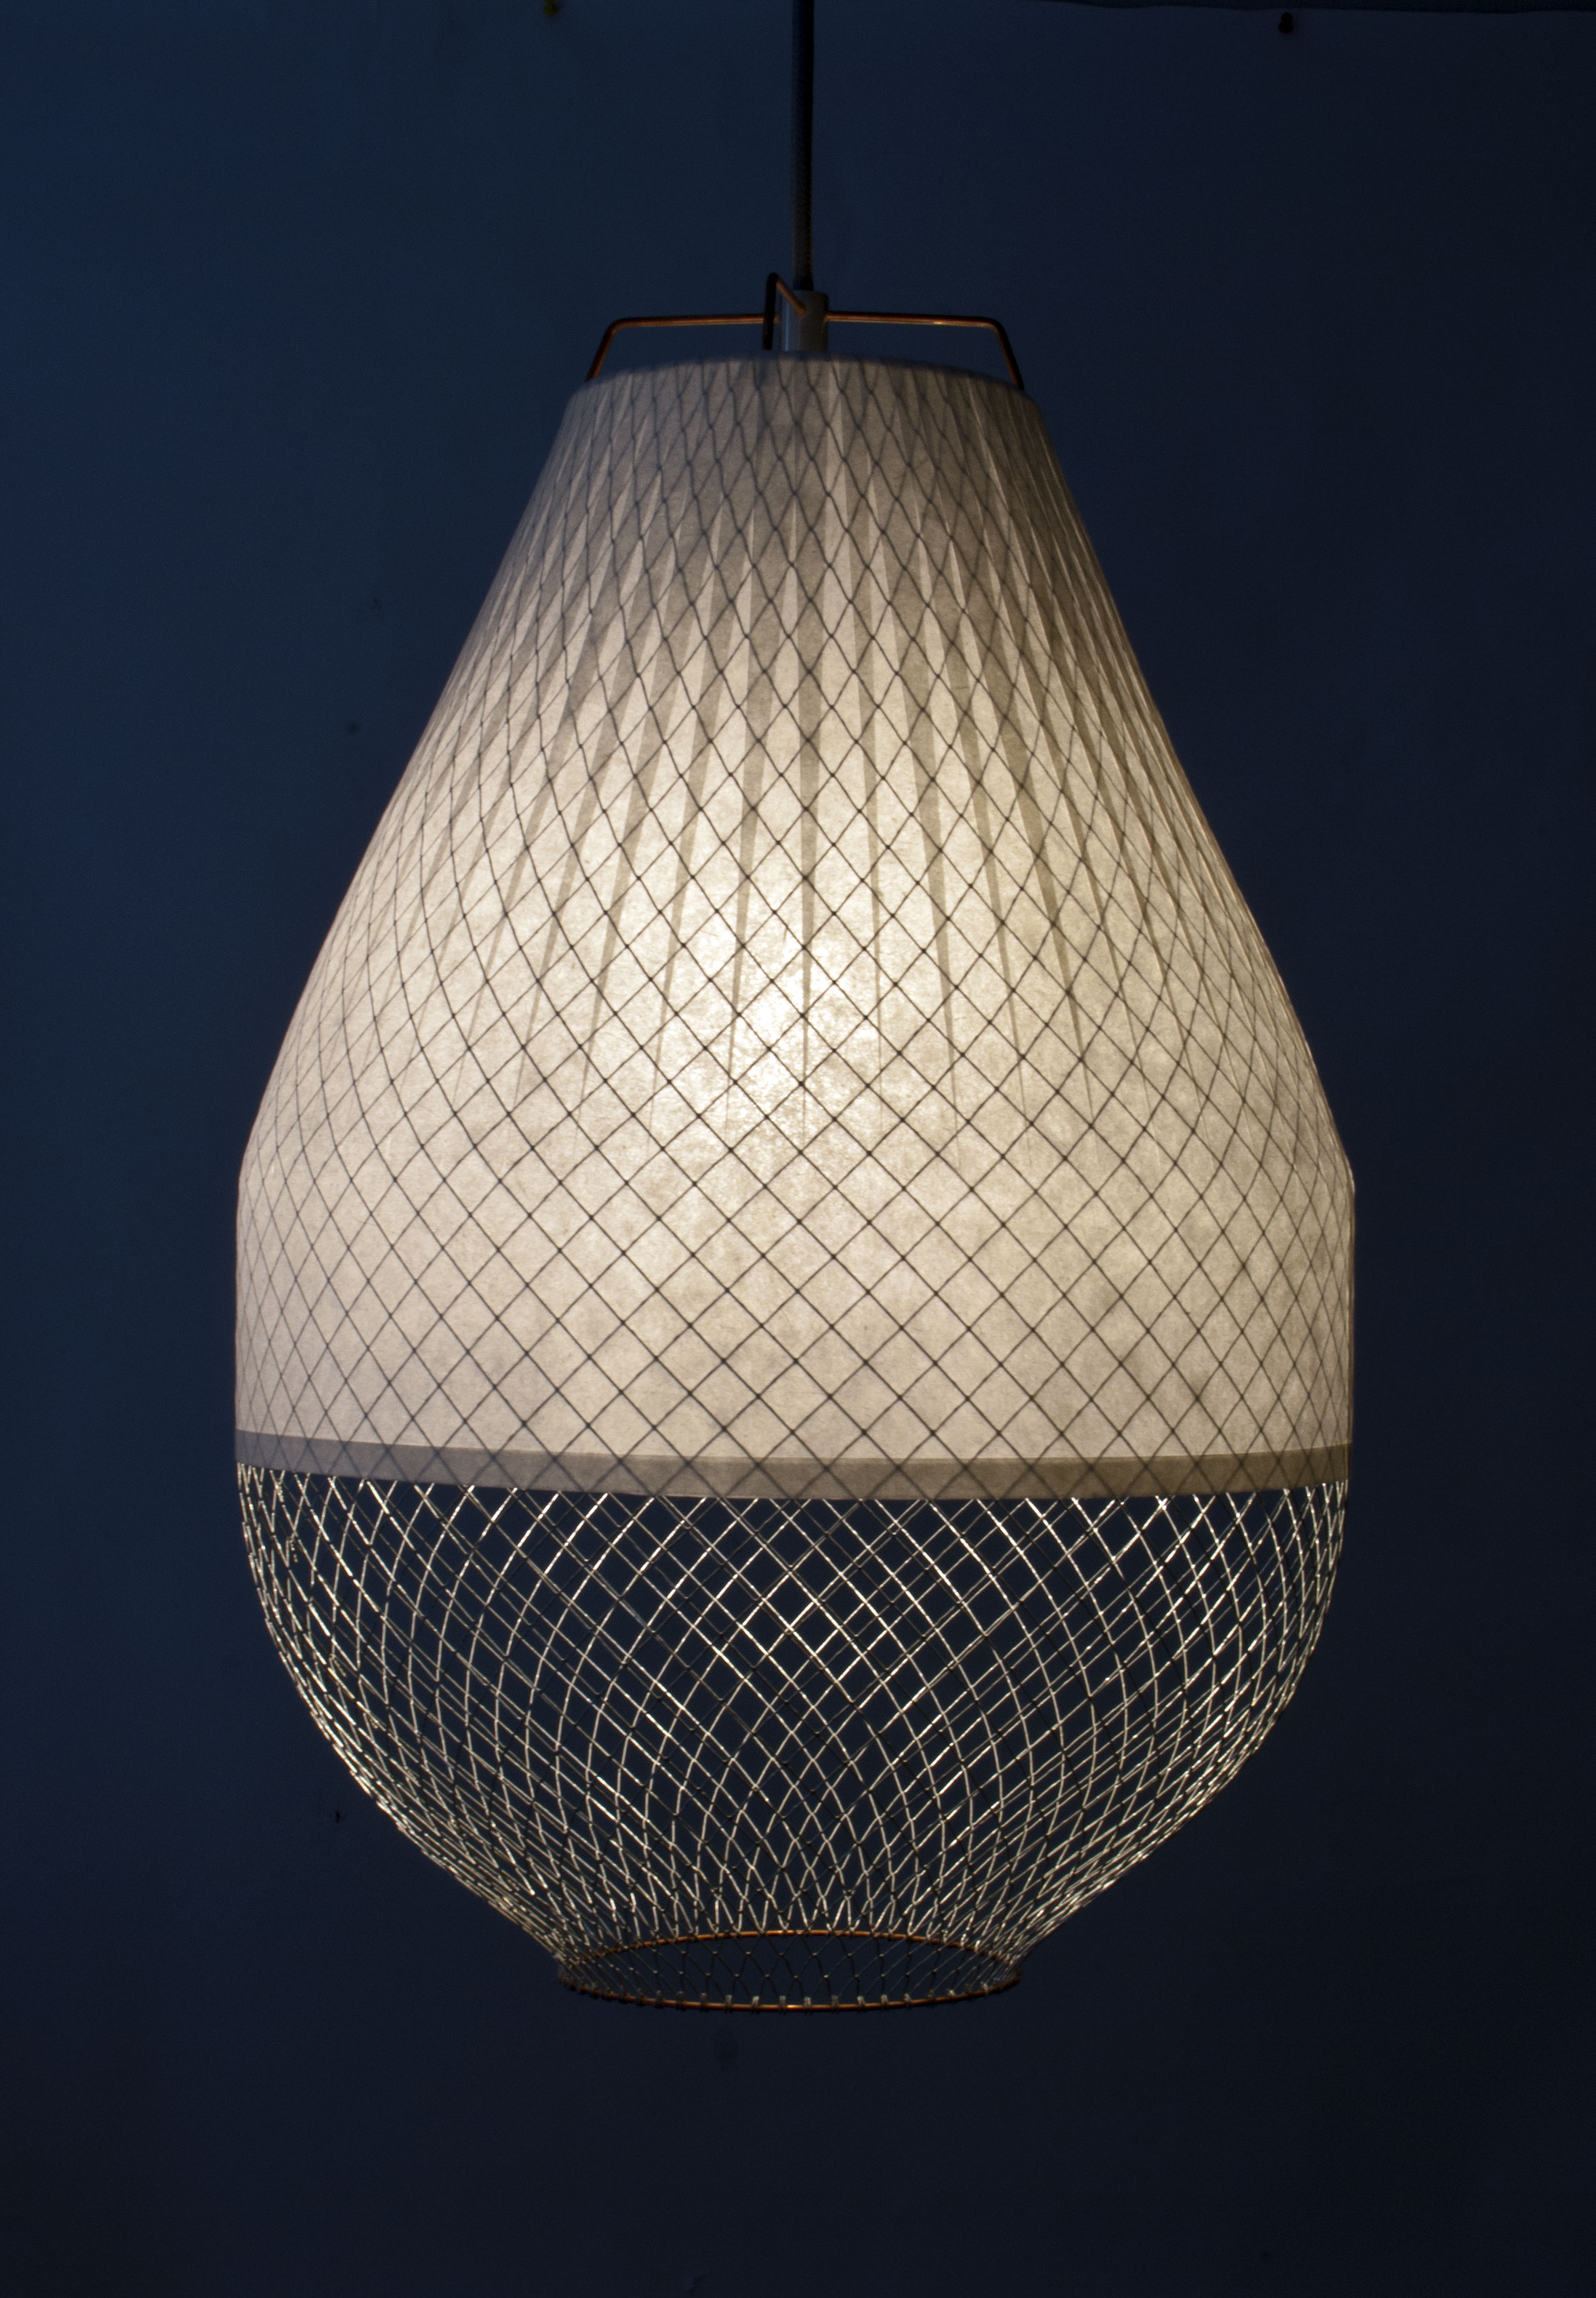 Open MESHMATICS Lamp Rick Tegelaar on Dutch design online gimmii